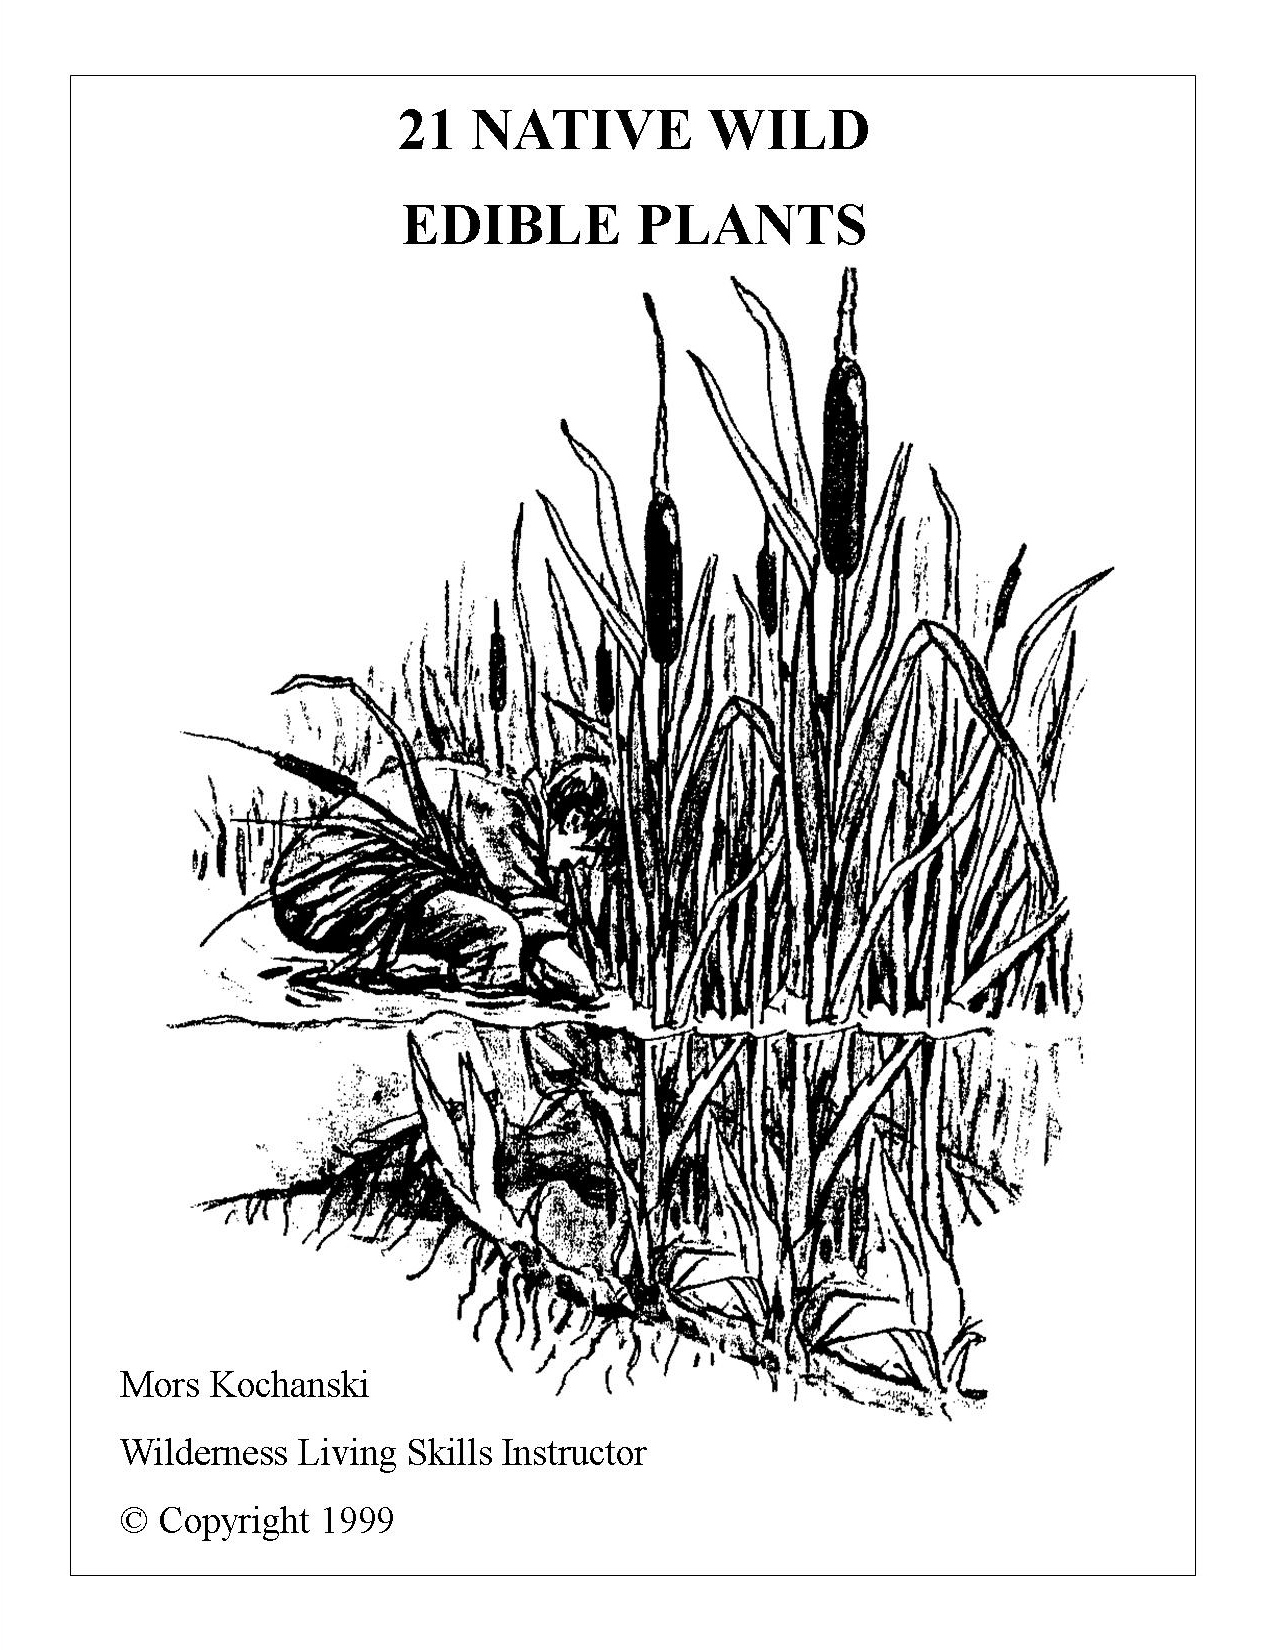 21 Native Wild Edible Plants